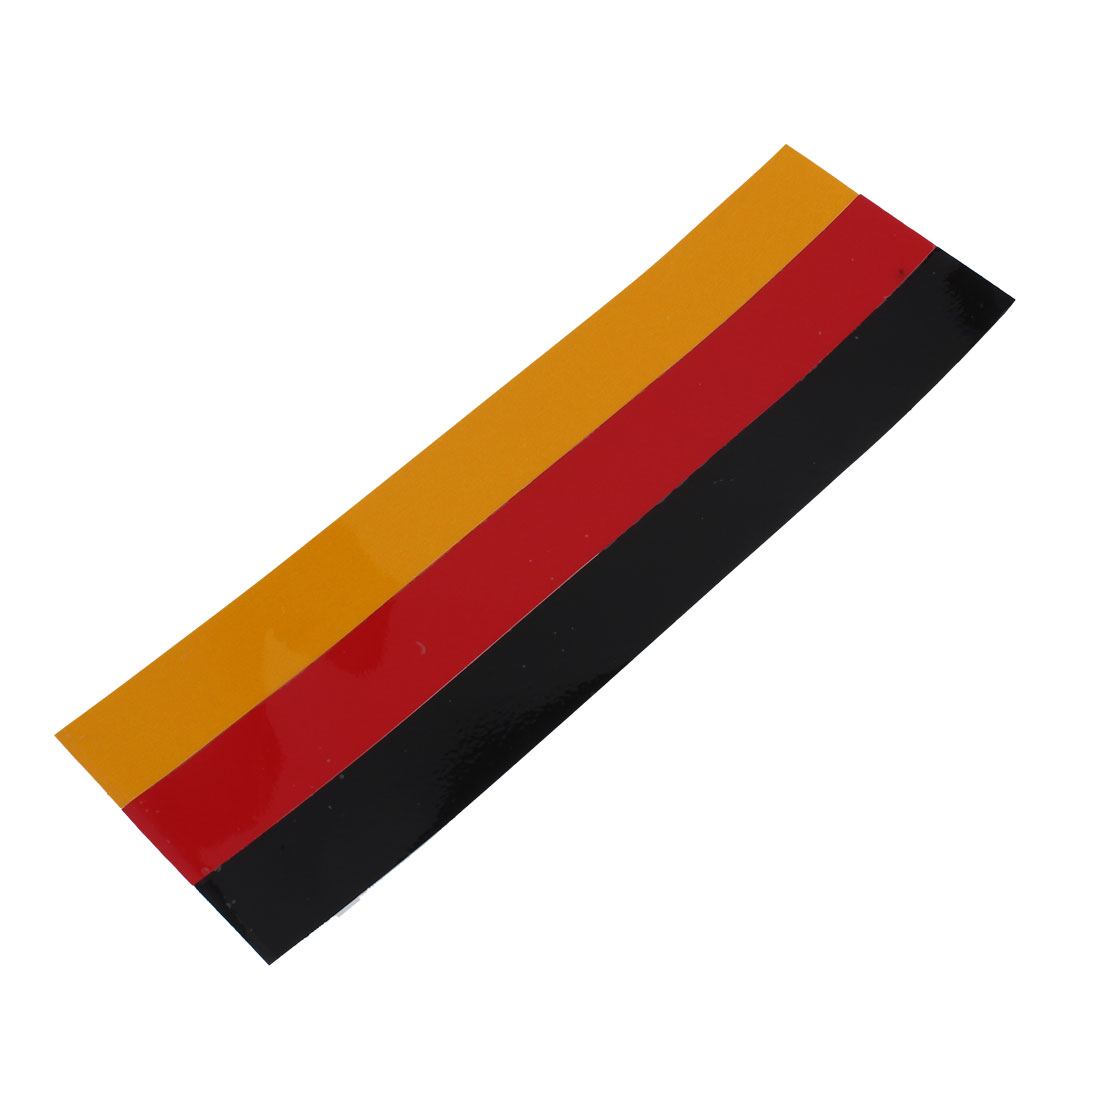 Red Black Yellow Germany Flag Pattern Jeep Car Reflective Decal Sticker